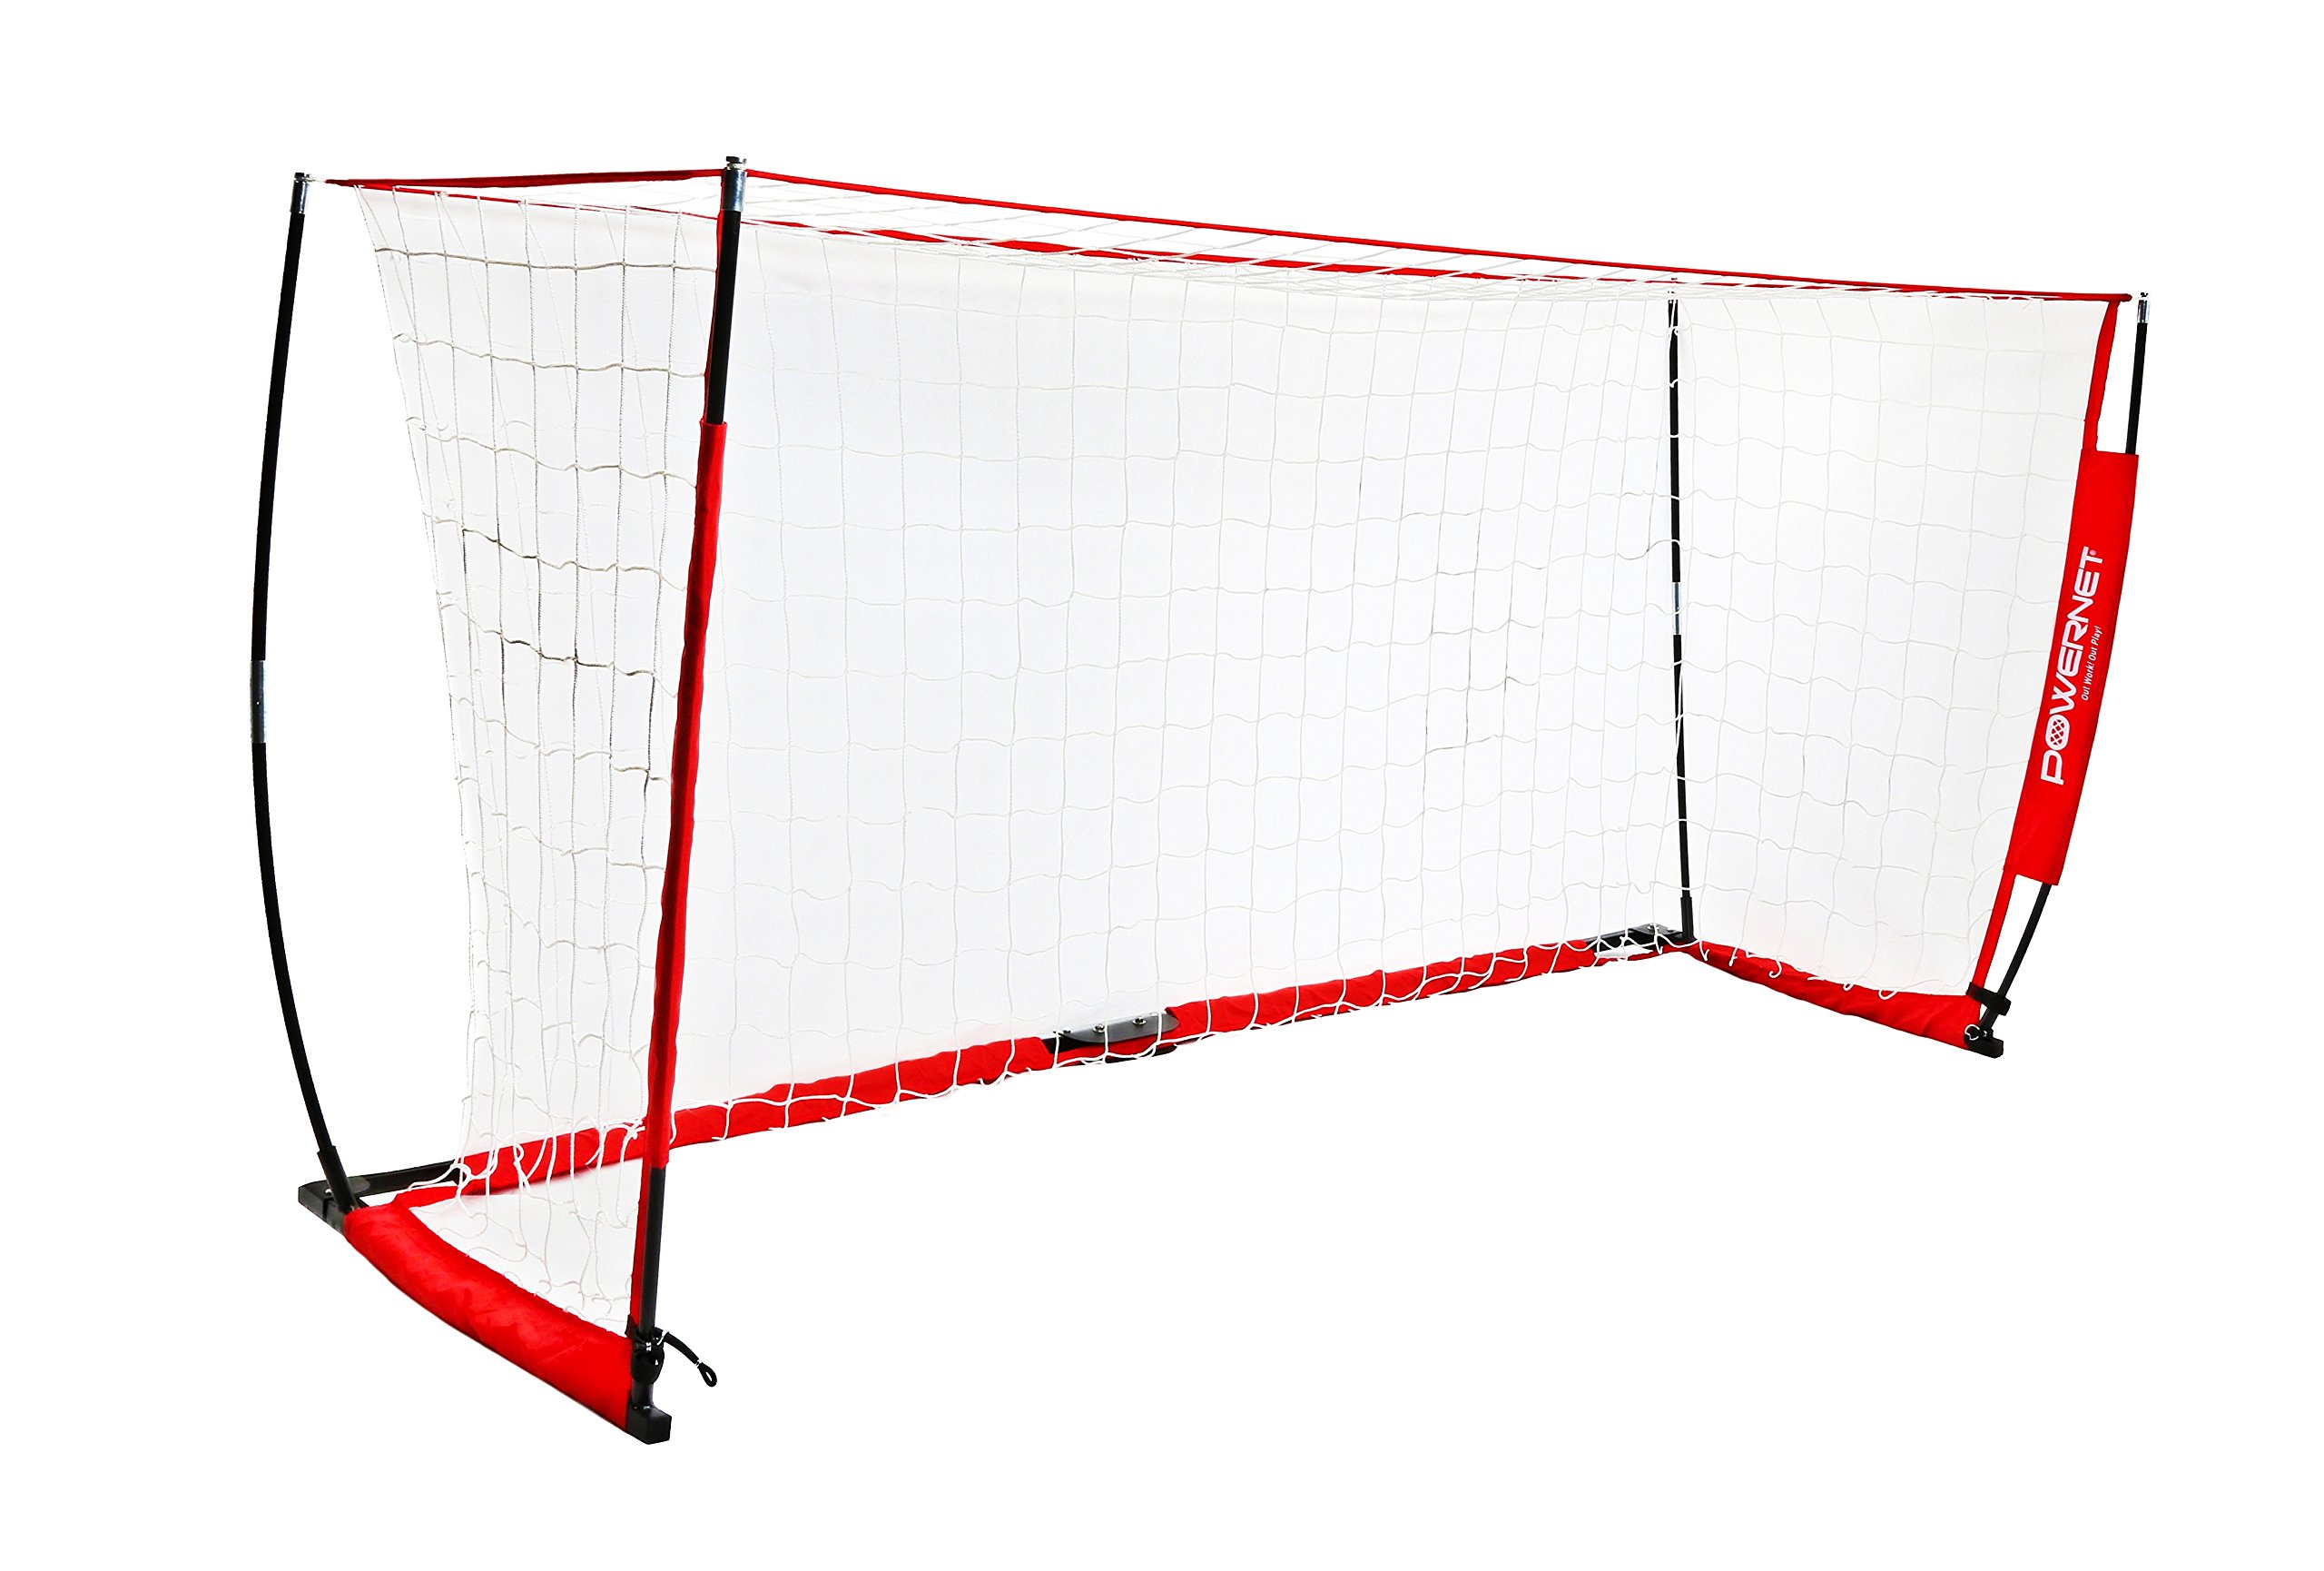 PowerNet Soccer Goal 14x7 Portable Bow Style Net by PowerNet